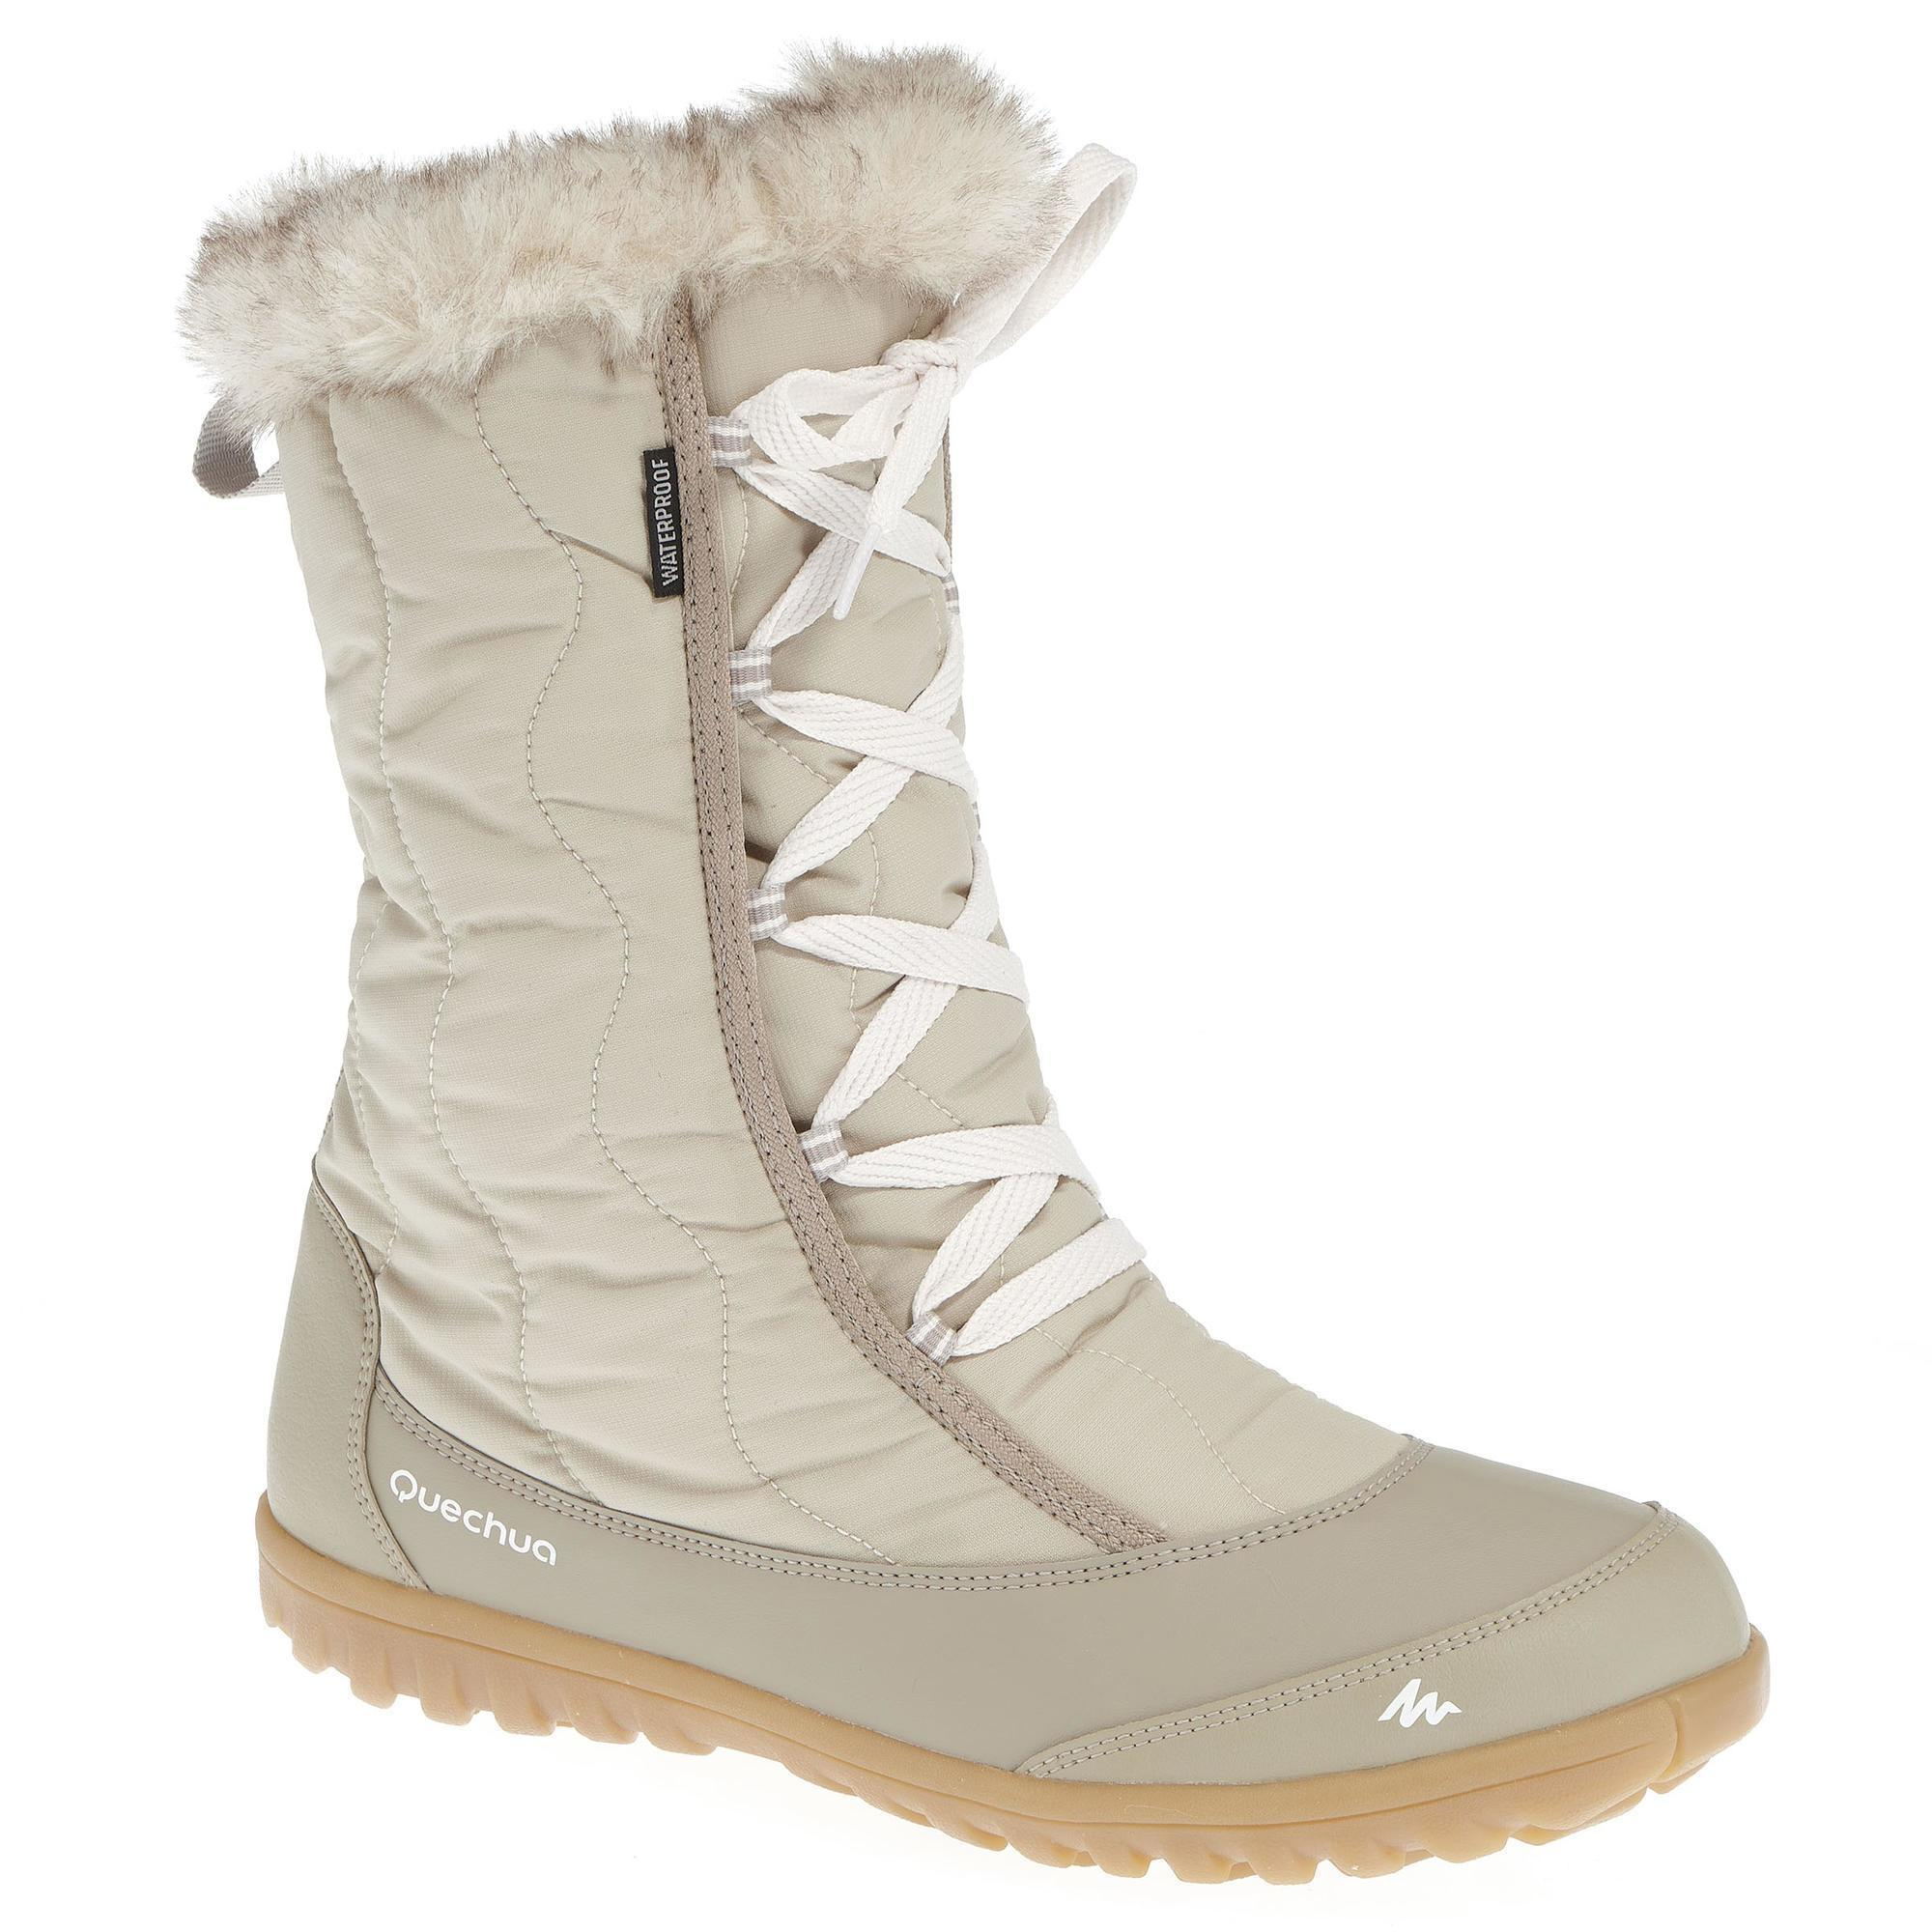 skechers on loading the booties comfortable zoom ankle item go chugga boots for black comforter in walk walking